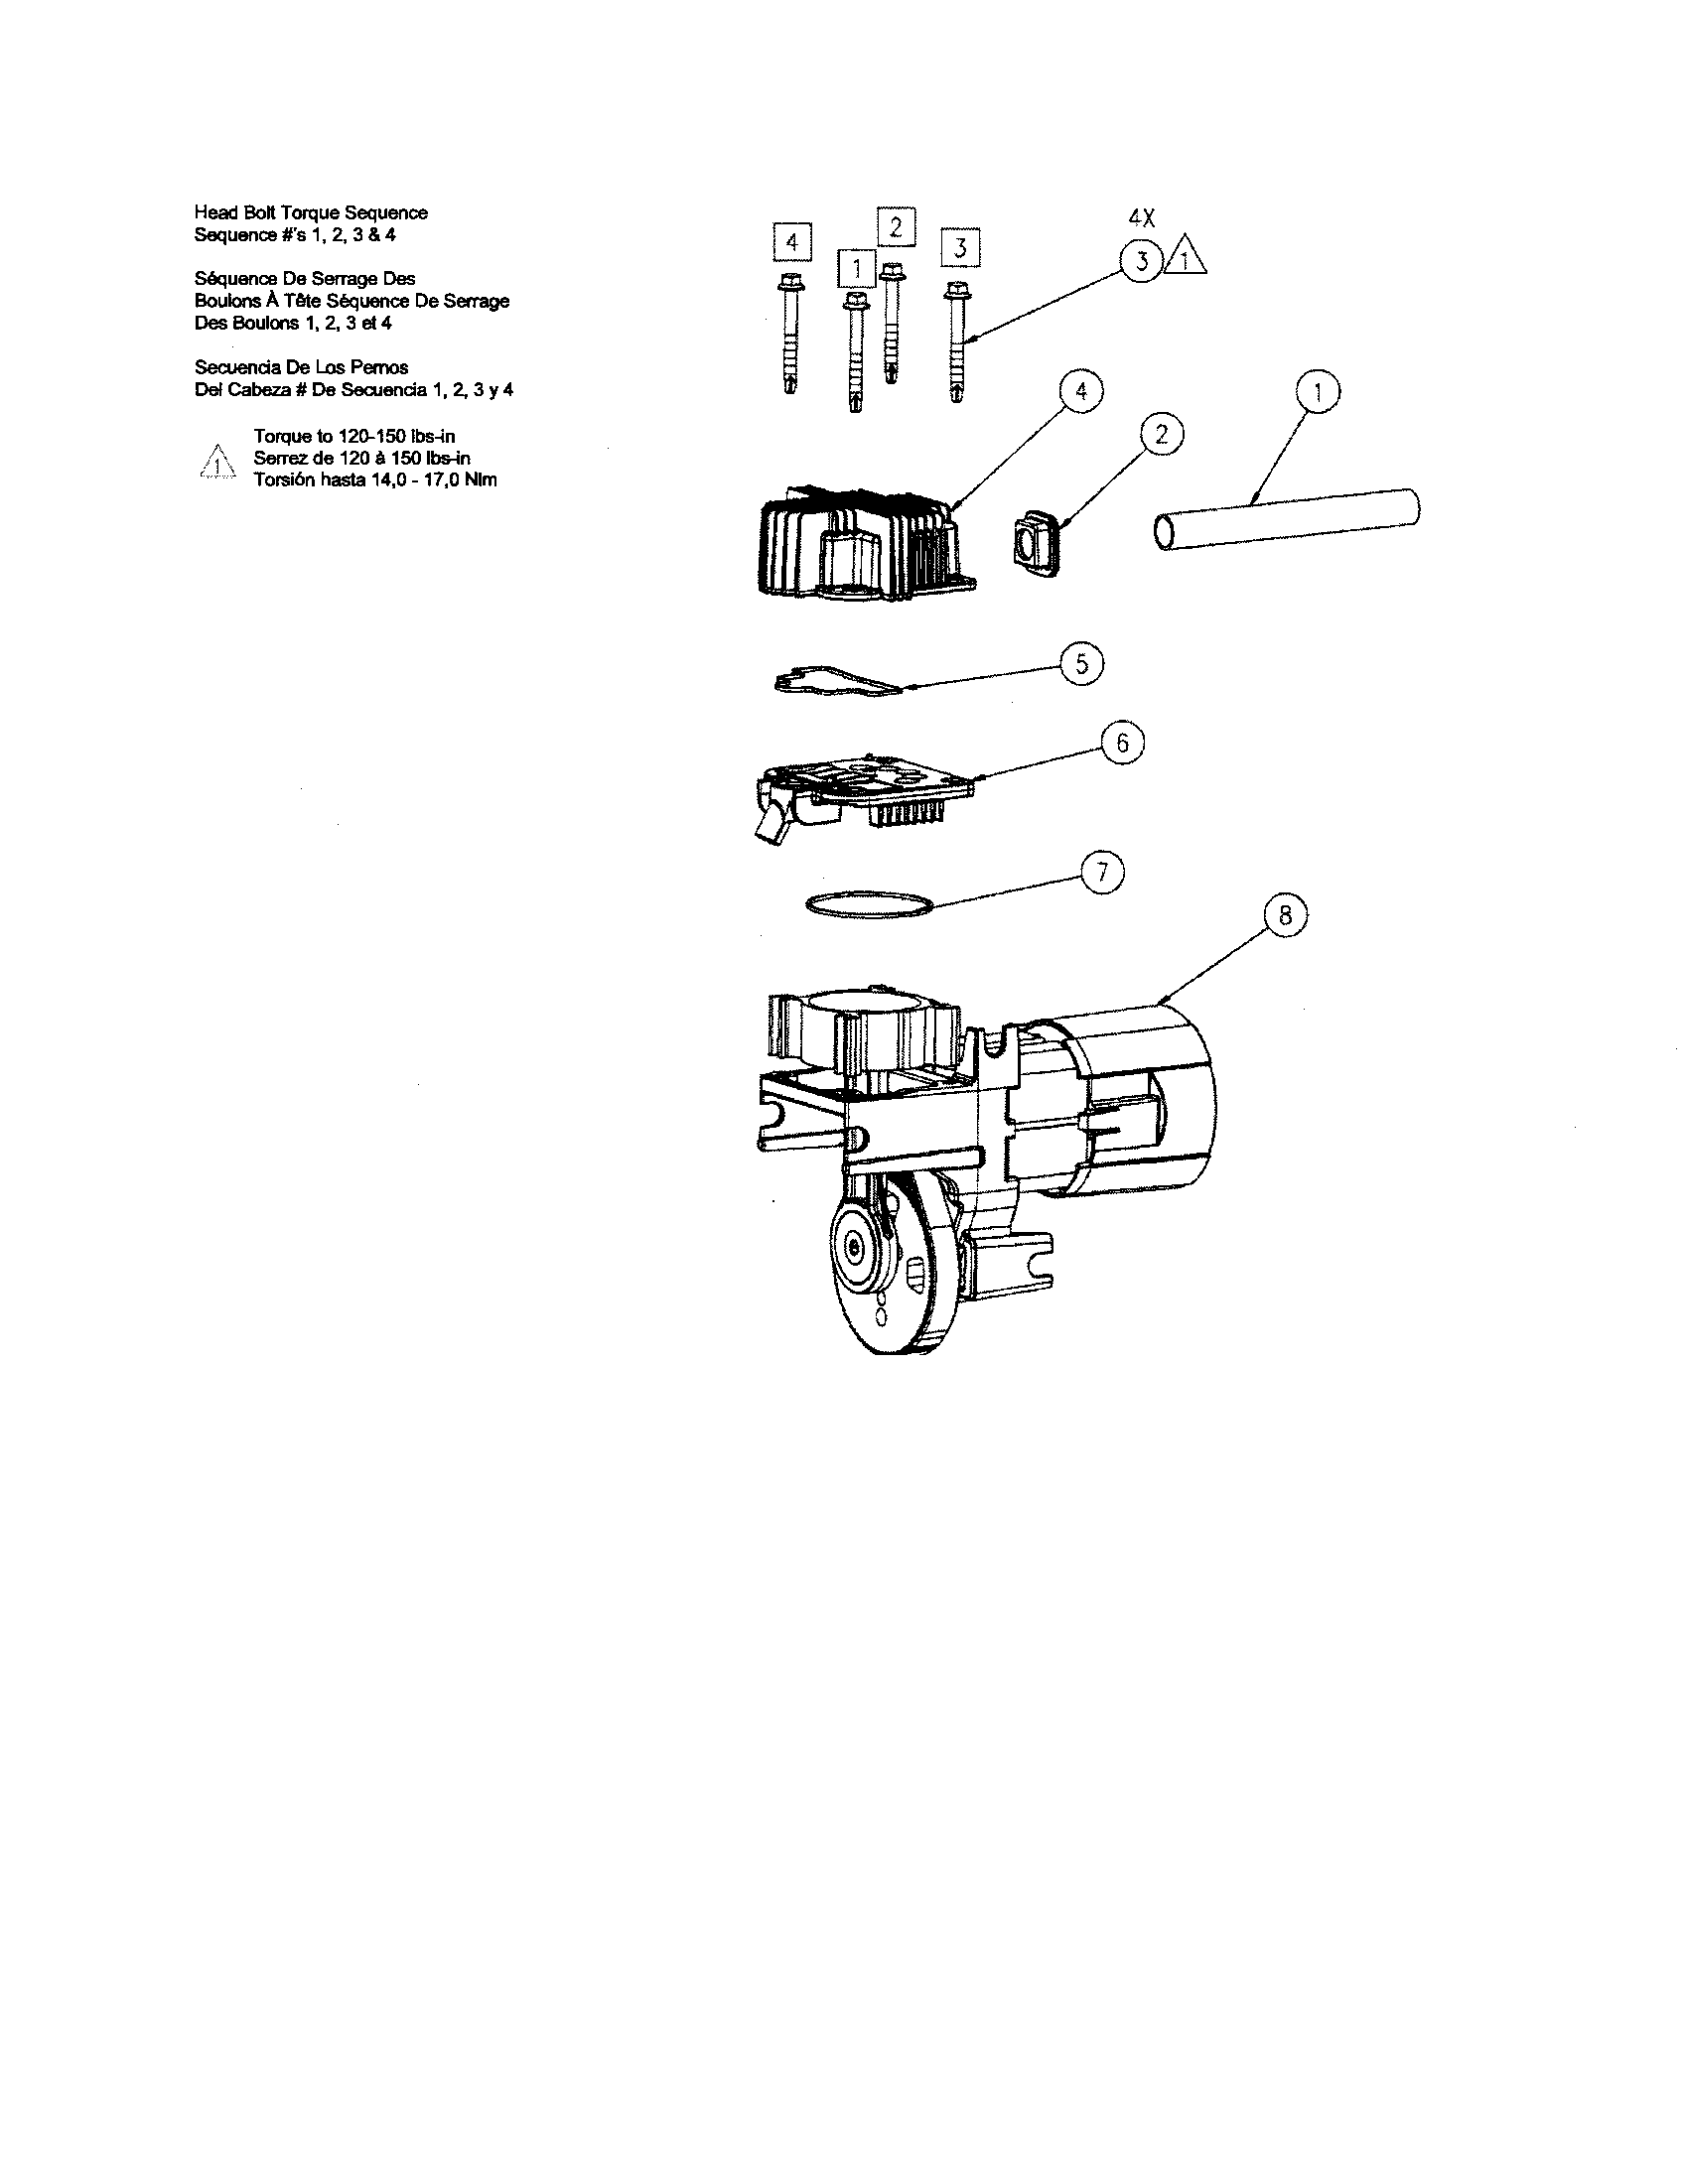 MOTOR/PUMP/TUBE, INTAKE Diagram & Parts List for Model